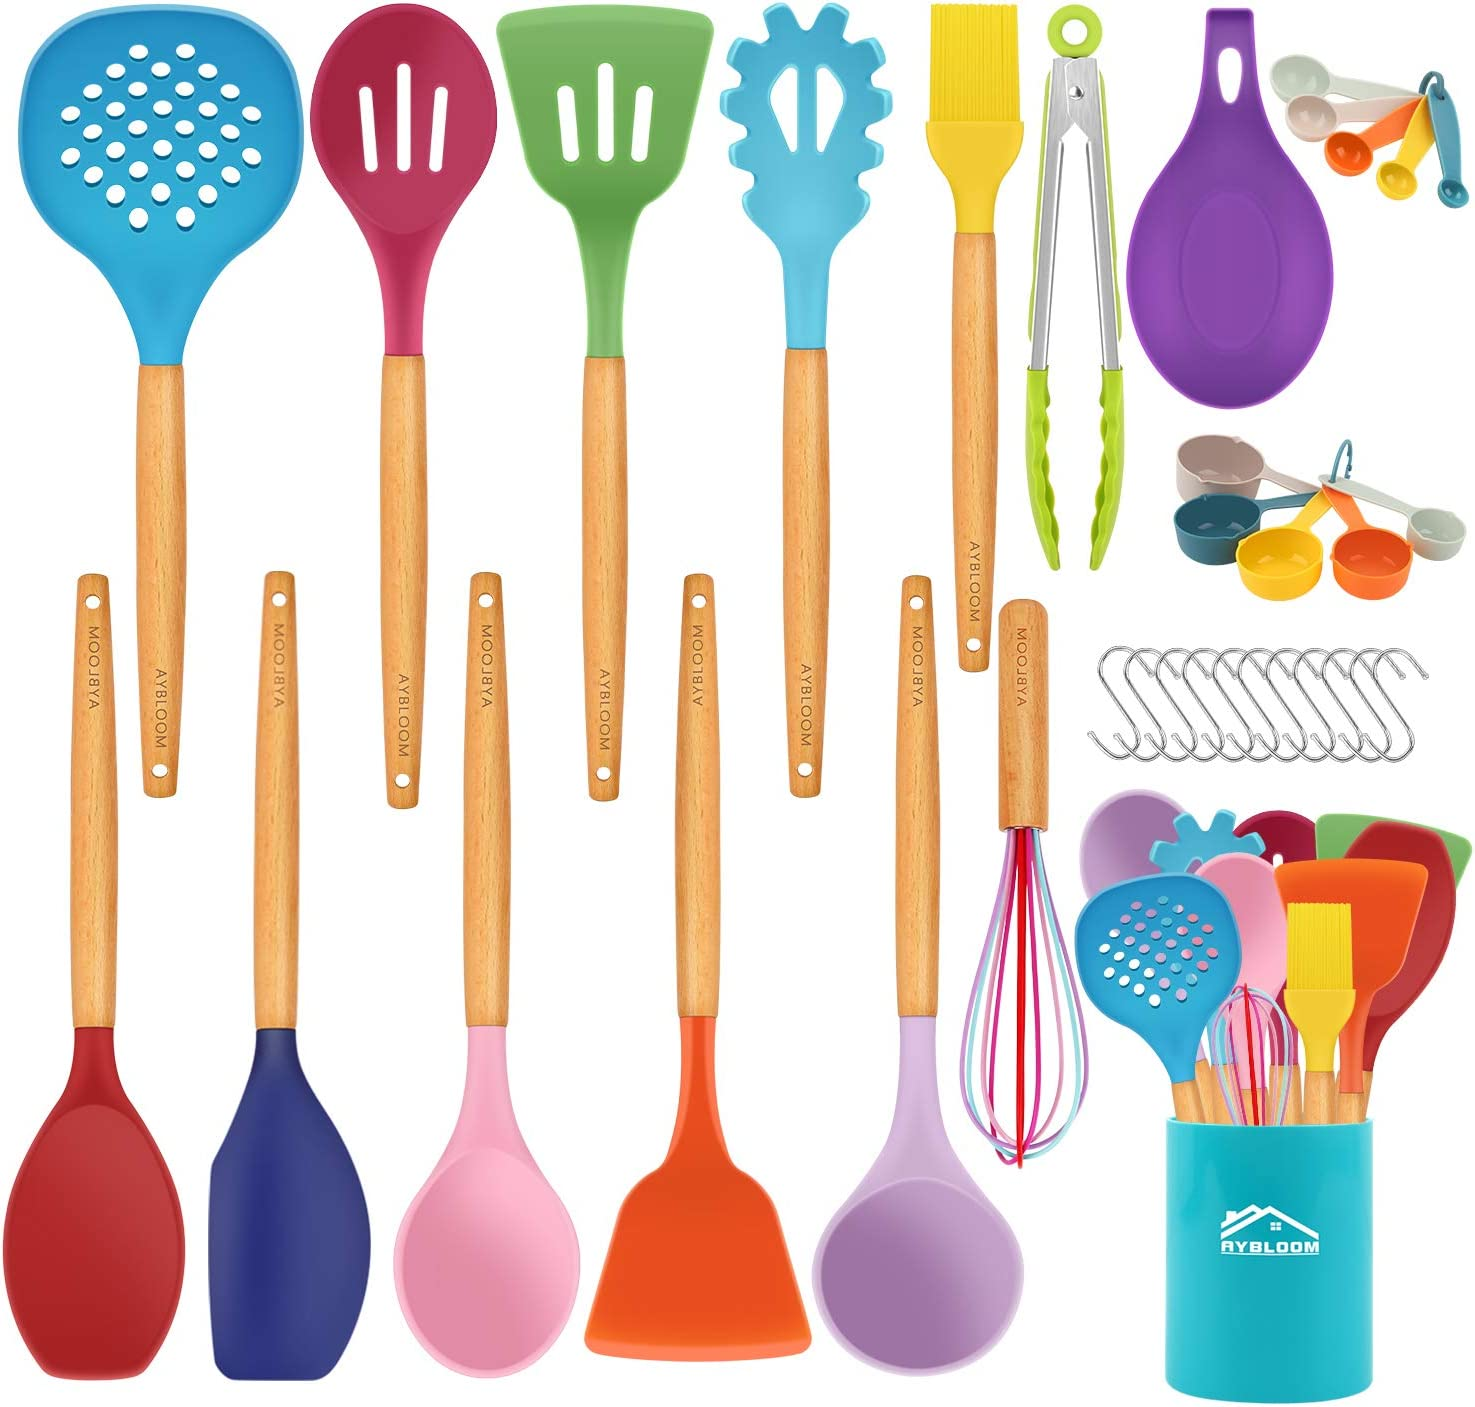 Heat Resistant Silicone Kitchen Gadgets Utensil with Stainless Steel Handle AIKKIL 26 pcs Non-stick Silicone Kitchen Utensils Spatula Set with Holder Kitchen Cooking Utensils Set Khaki